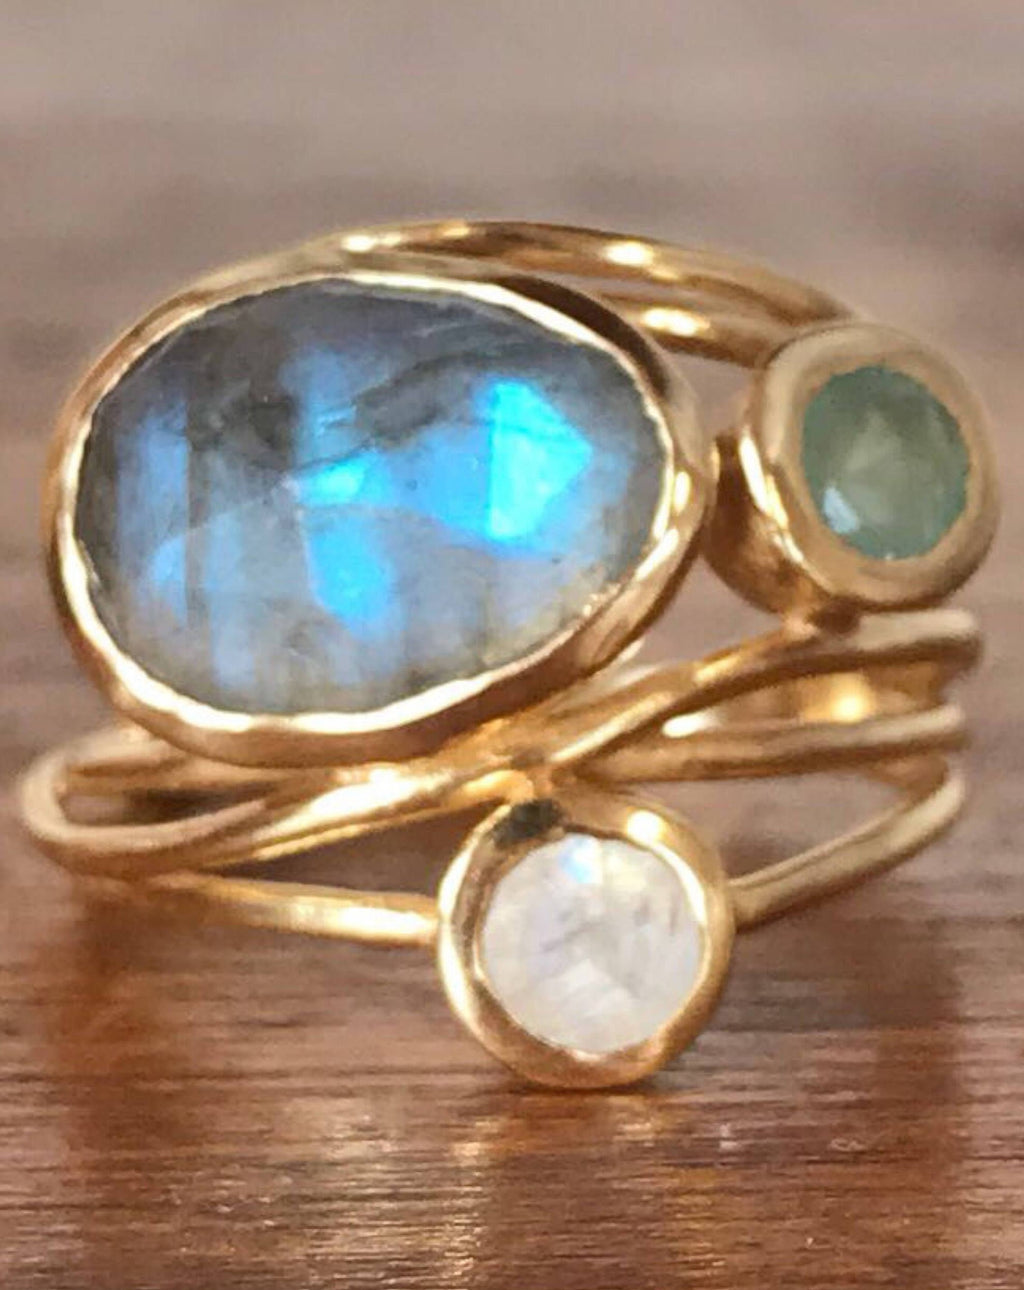 Gold Plated 18k Ring * Labradorite * Moonstone * Aqua Chalcedony *Gemstones * Handmade * Statement * Natural * Organic * Gift for her BJR100